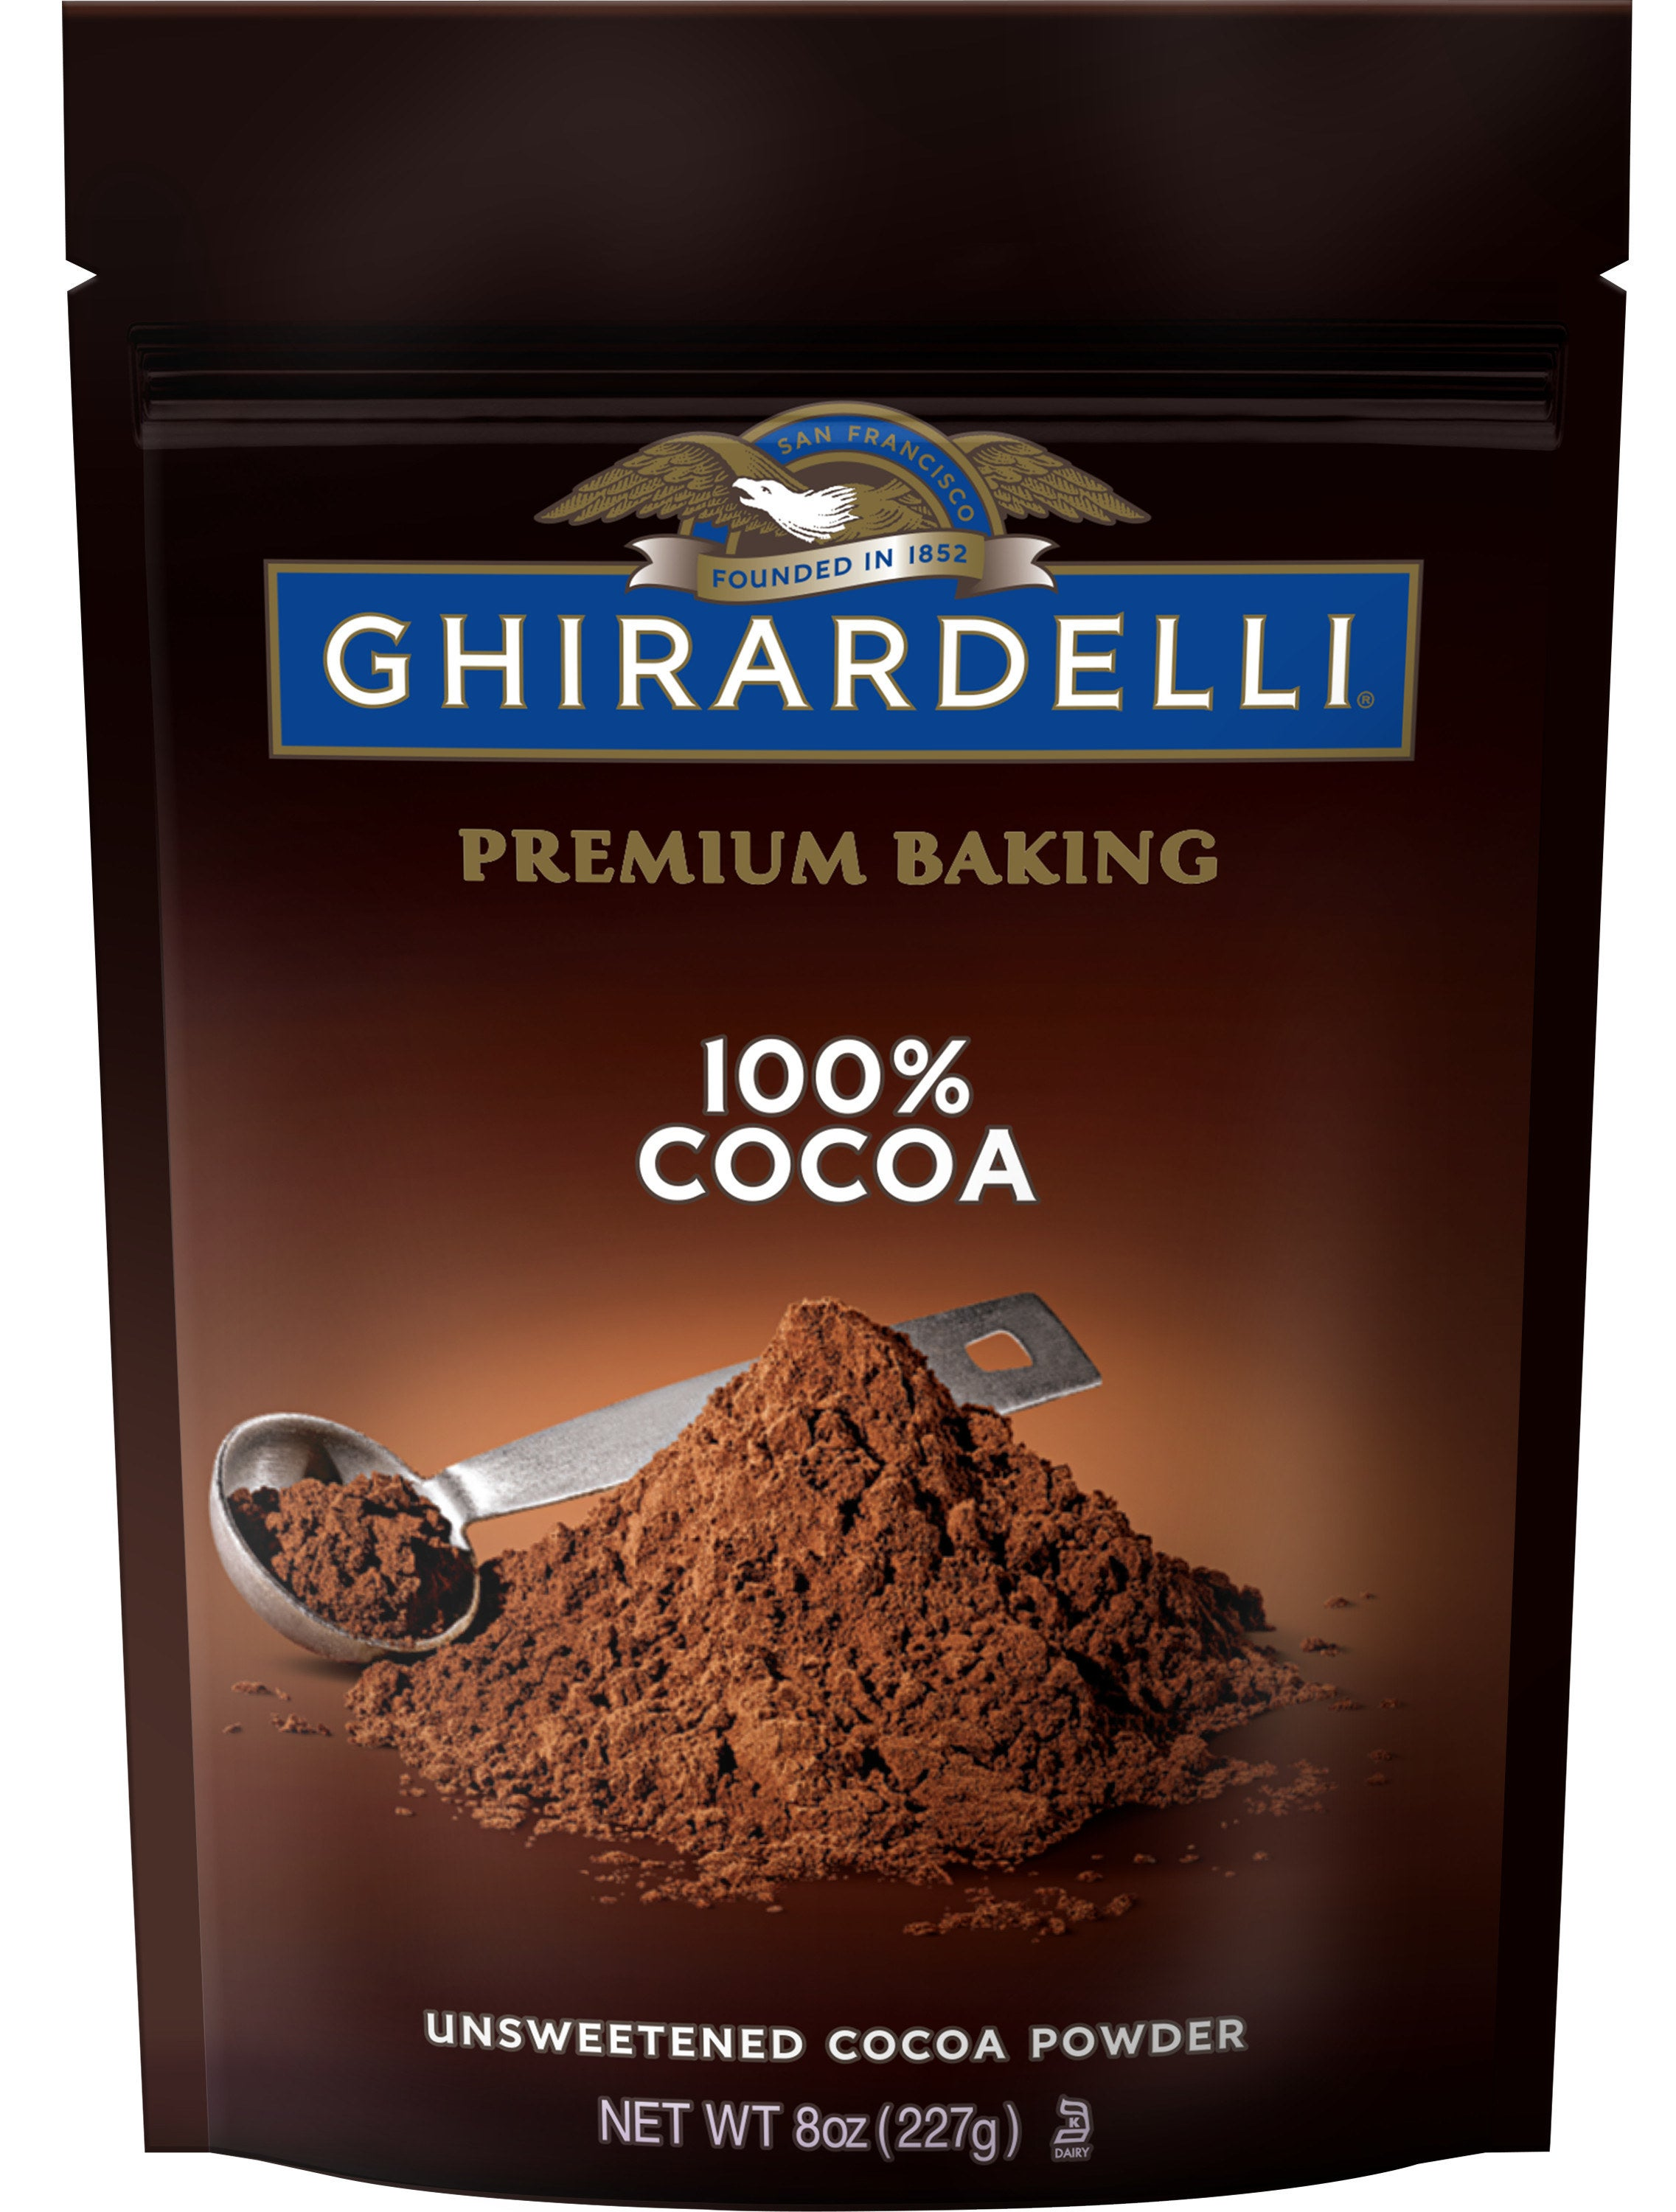 the brown bag of cocoa powder